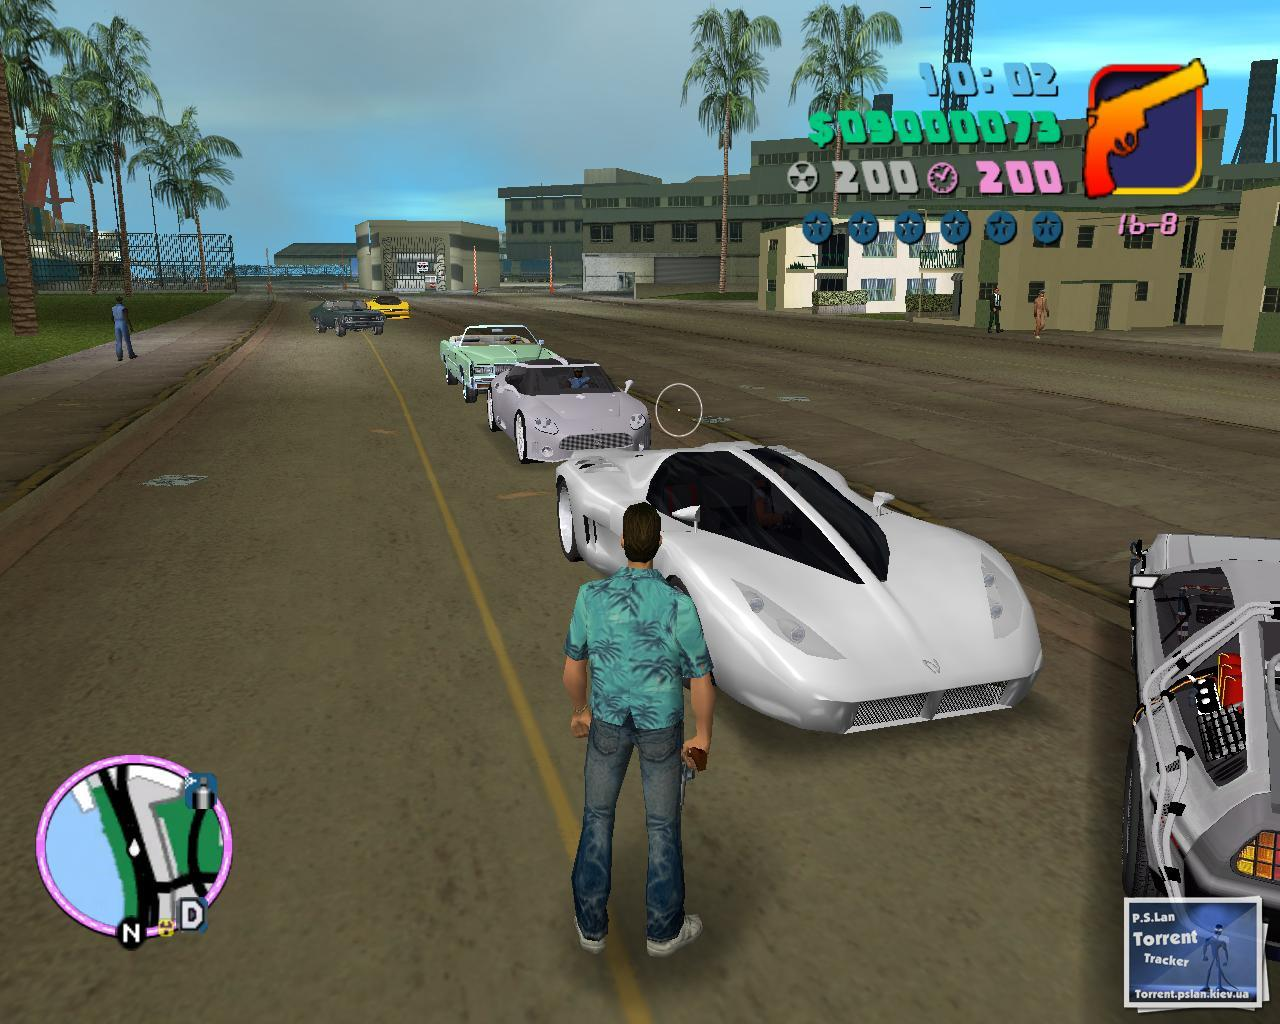 gta vice city free download for pc full version game compressed